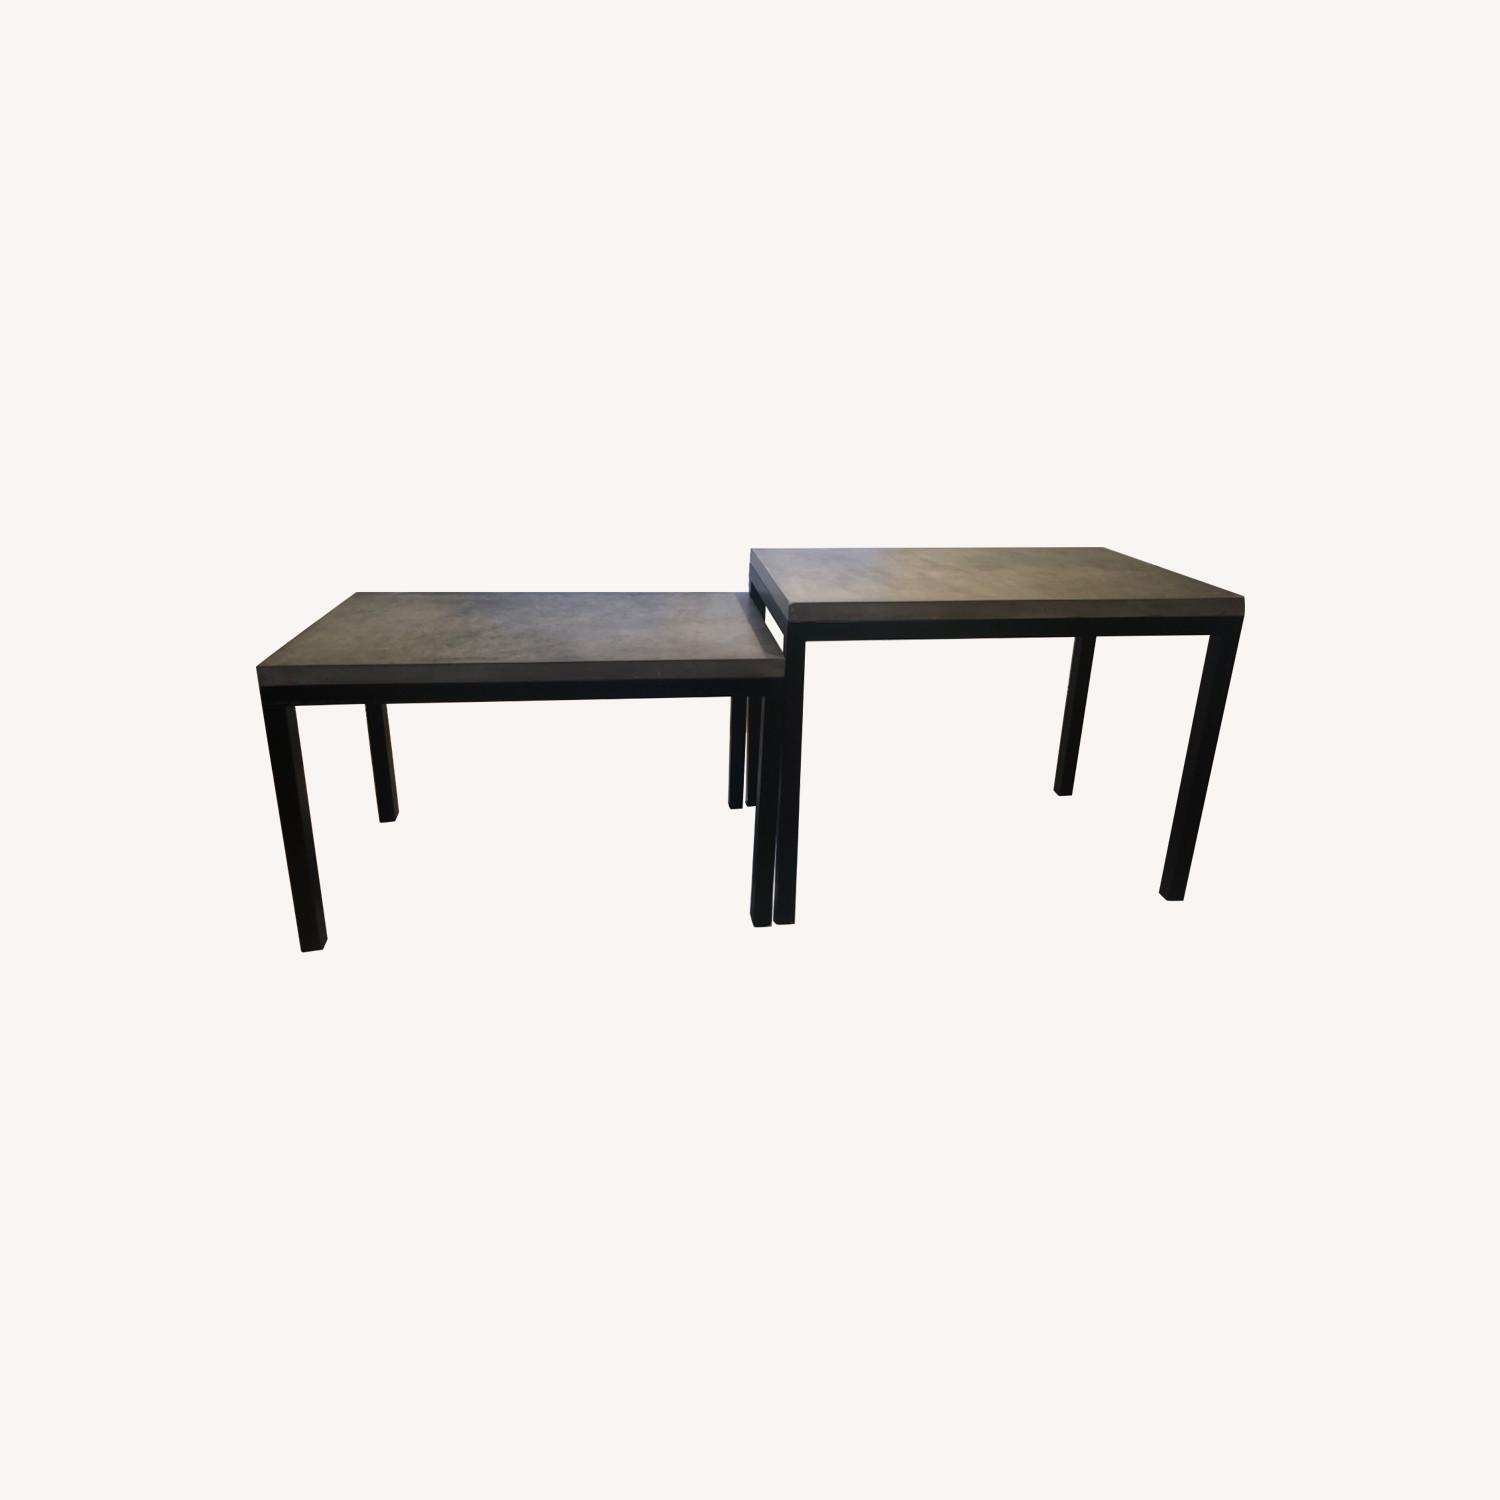 Crate & Barrel 2 Concrete Dining Tables - image-0